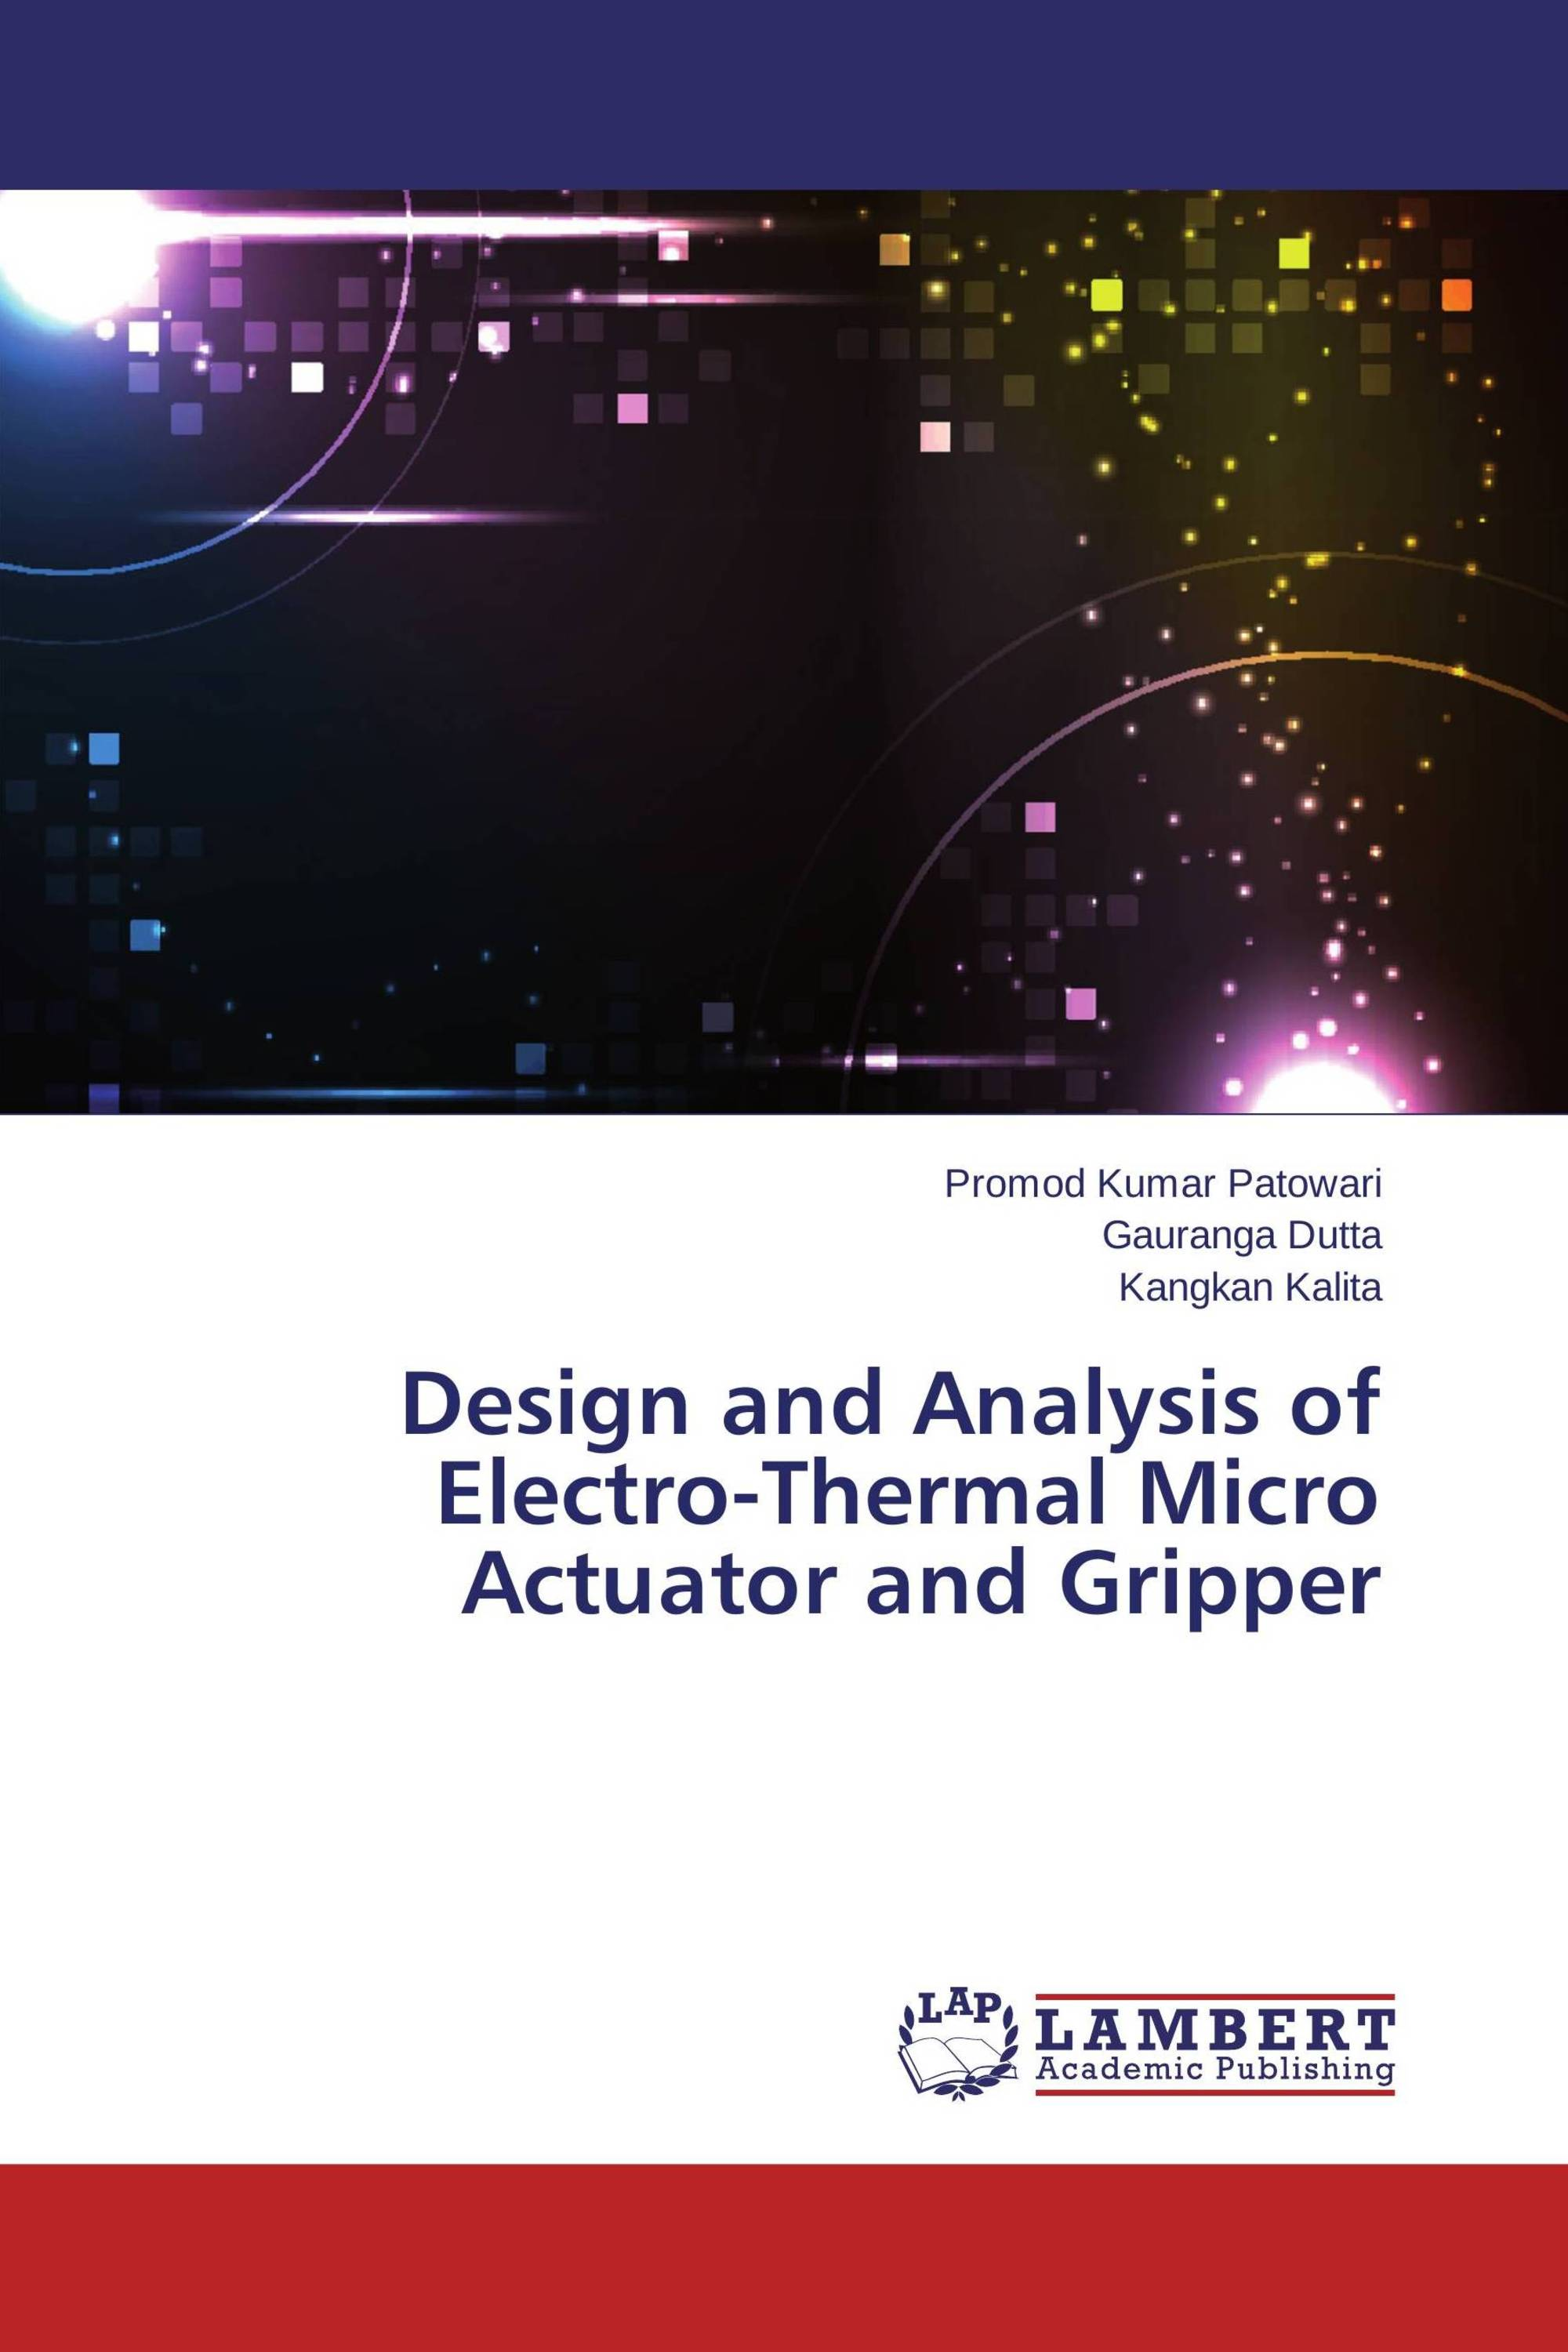 Design and Analysis of Electro-Thermal Micro Actuator and Gripper